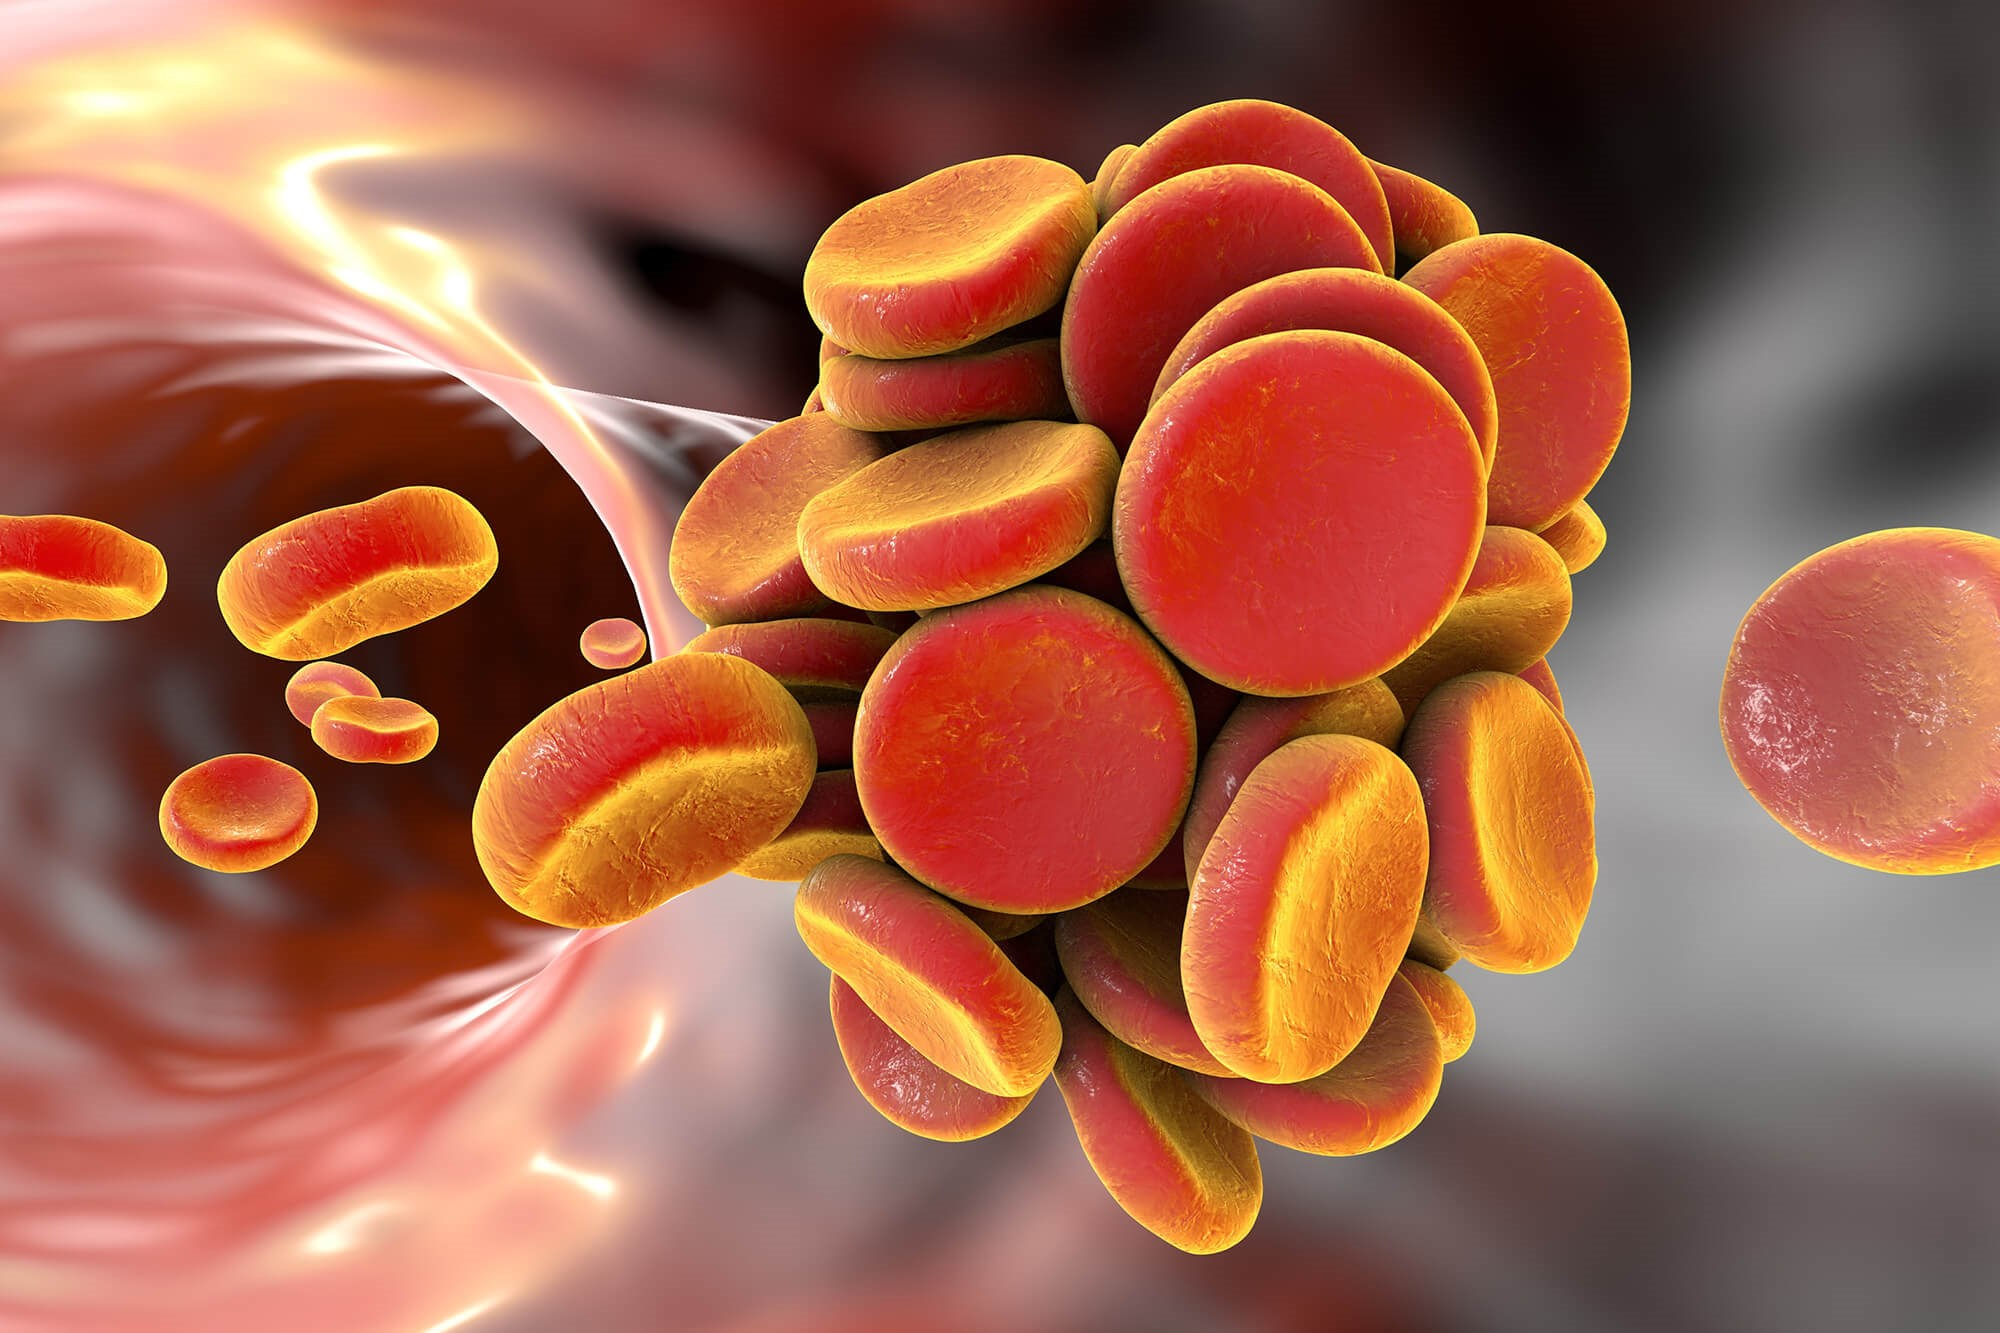 In this 3-part series, Hematology Advisor spoke with experts about the revisions to the ASH clinical practice guidelines for venous thromboembolism.